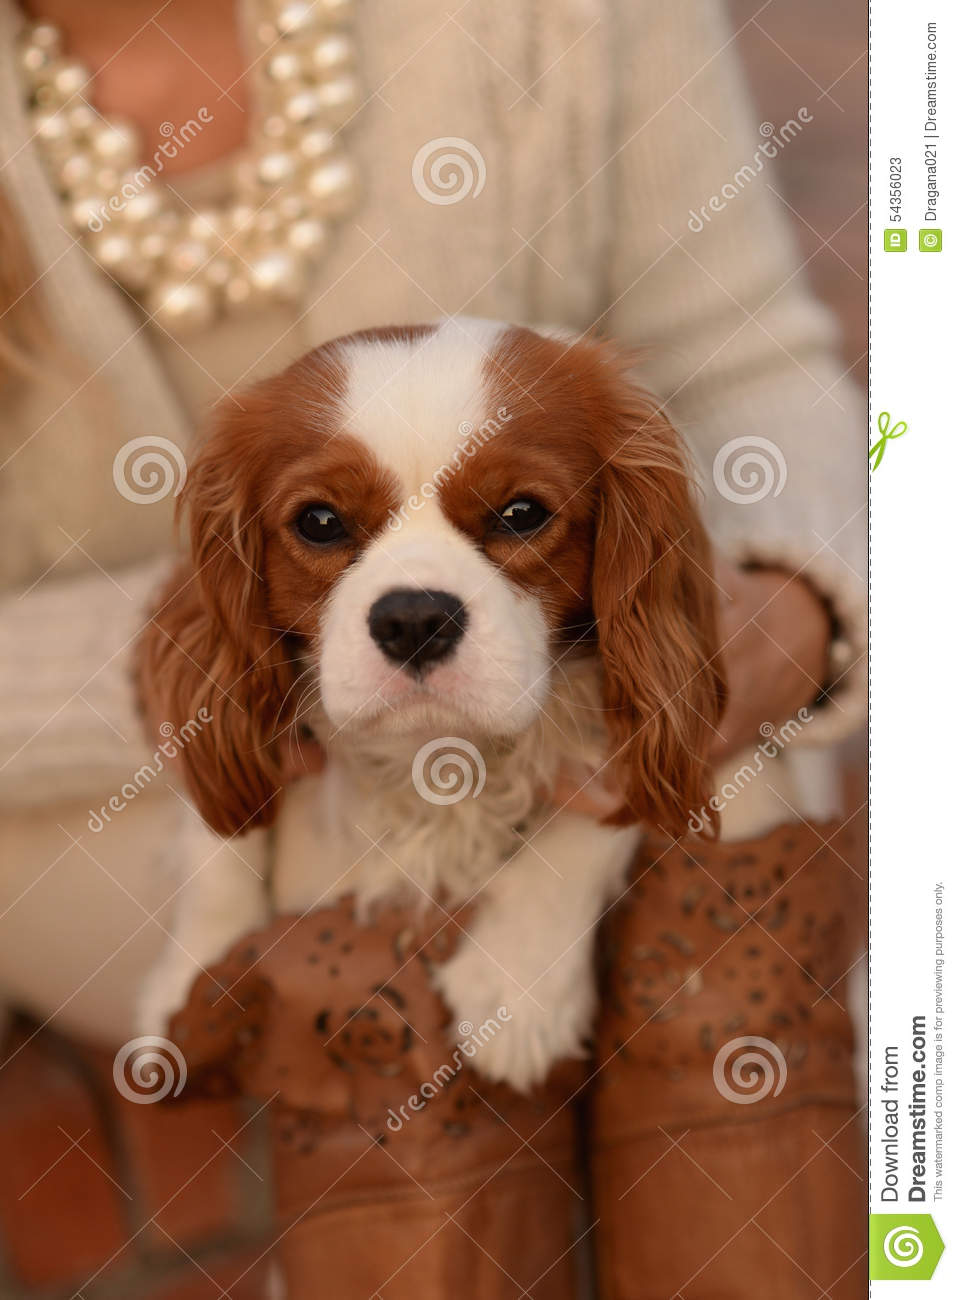 White Fluffy Dog With Brown Ears And Paws